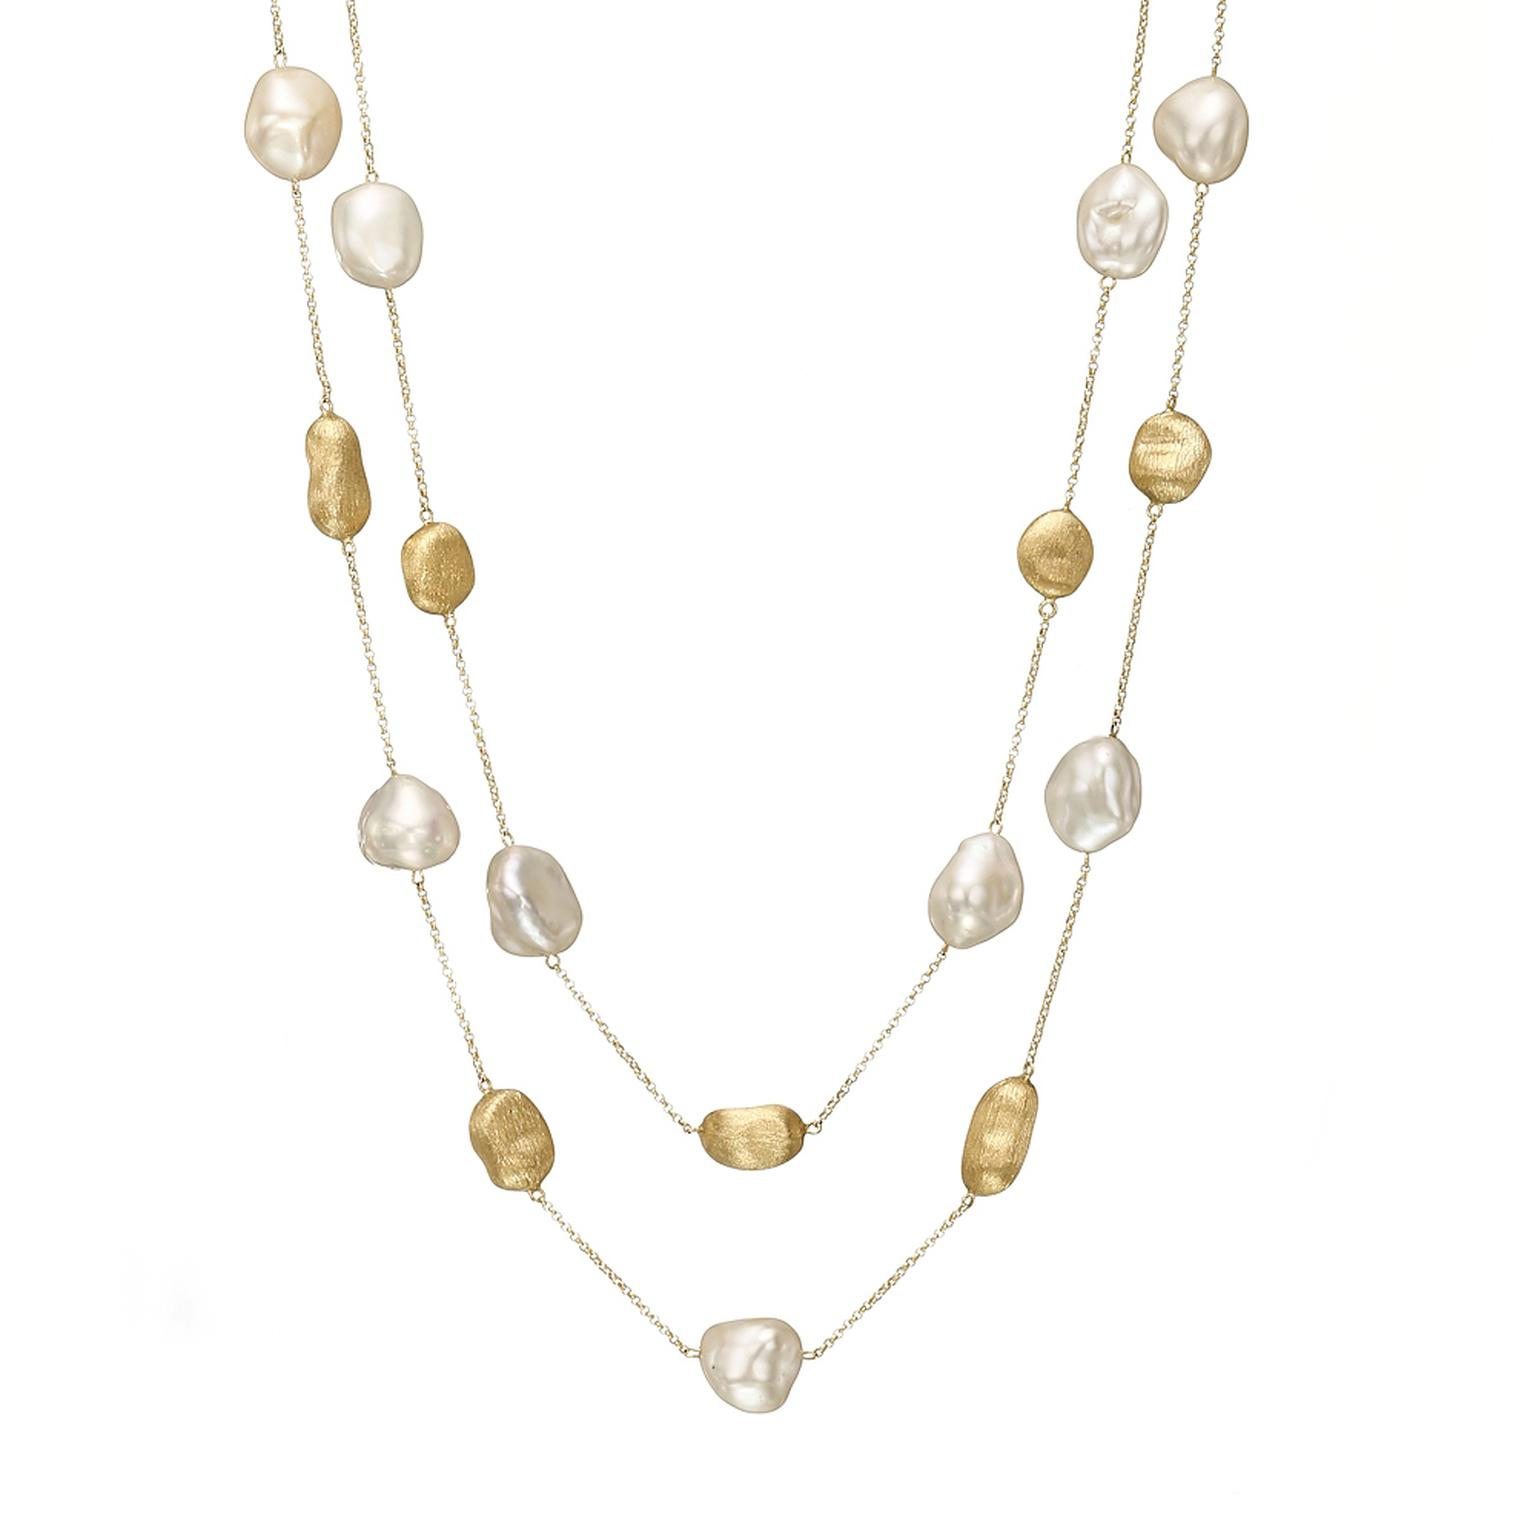 Yvel keshi pearl and gold nugget necklace